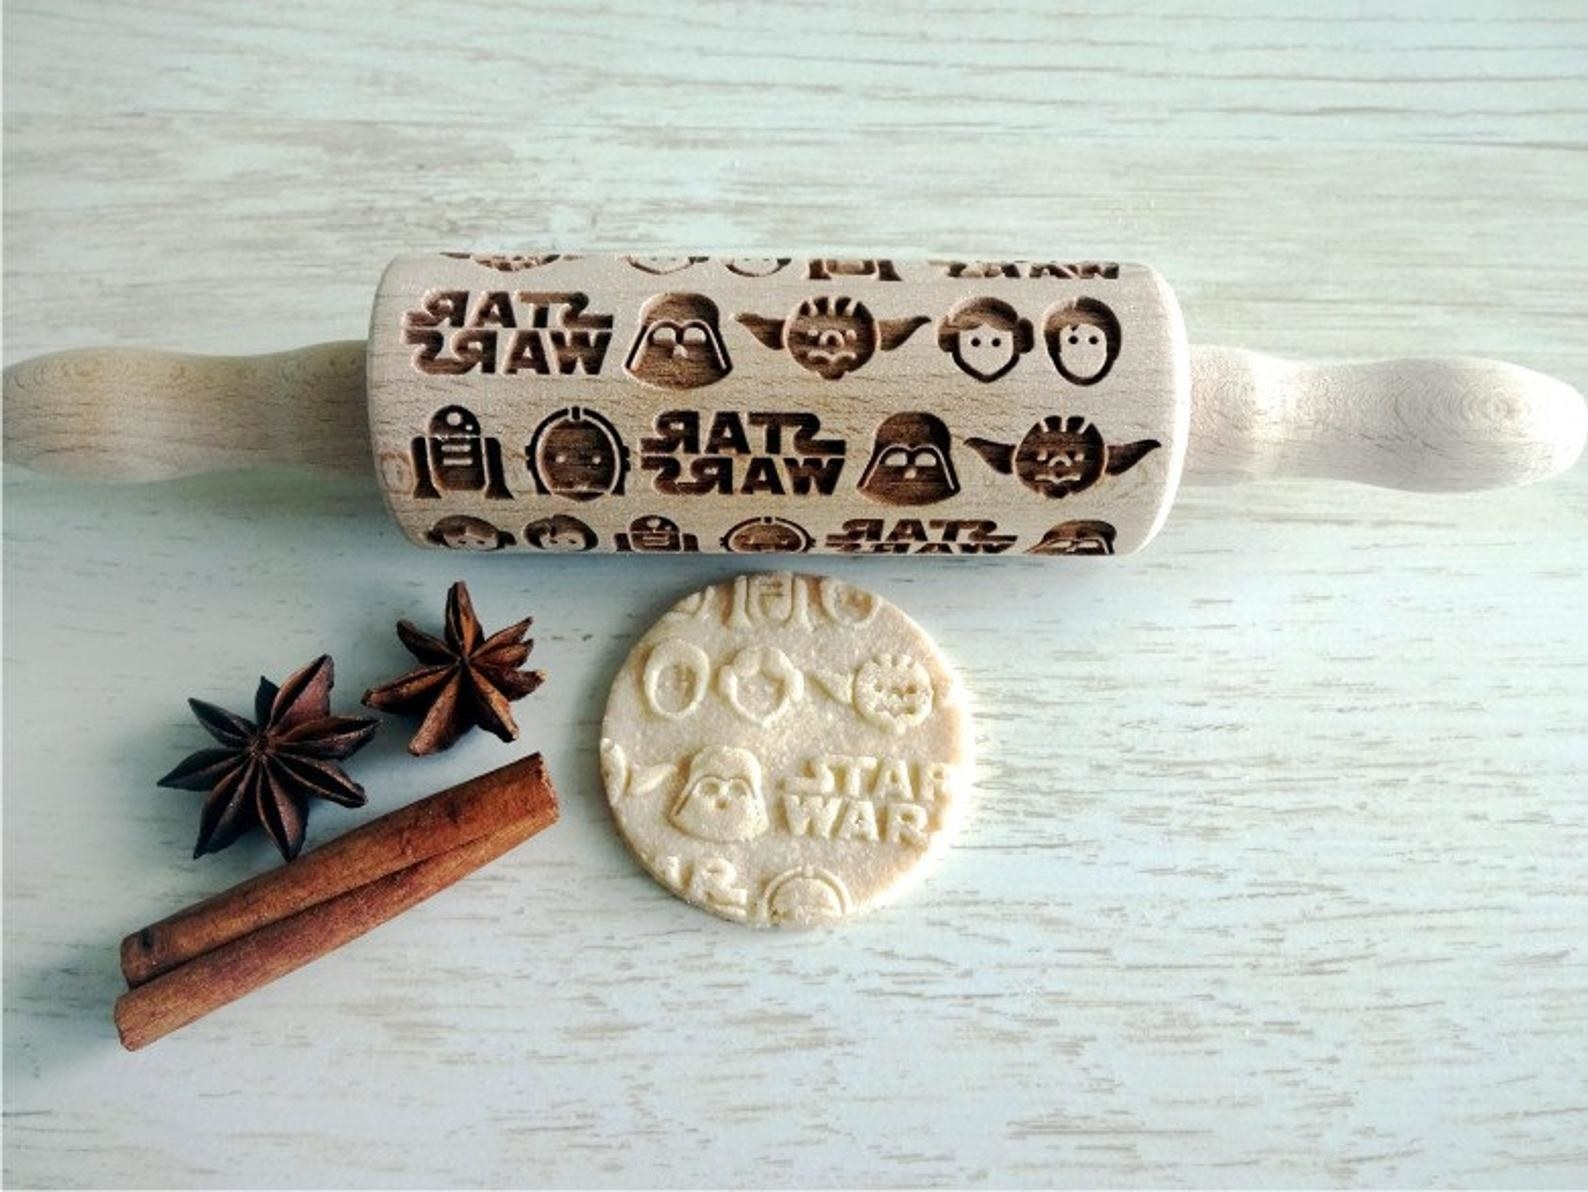 the rolling pin with the Star Wars logo on it and several characters' faces engraved in it